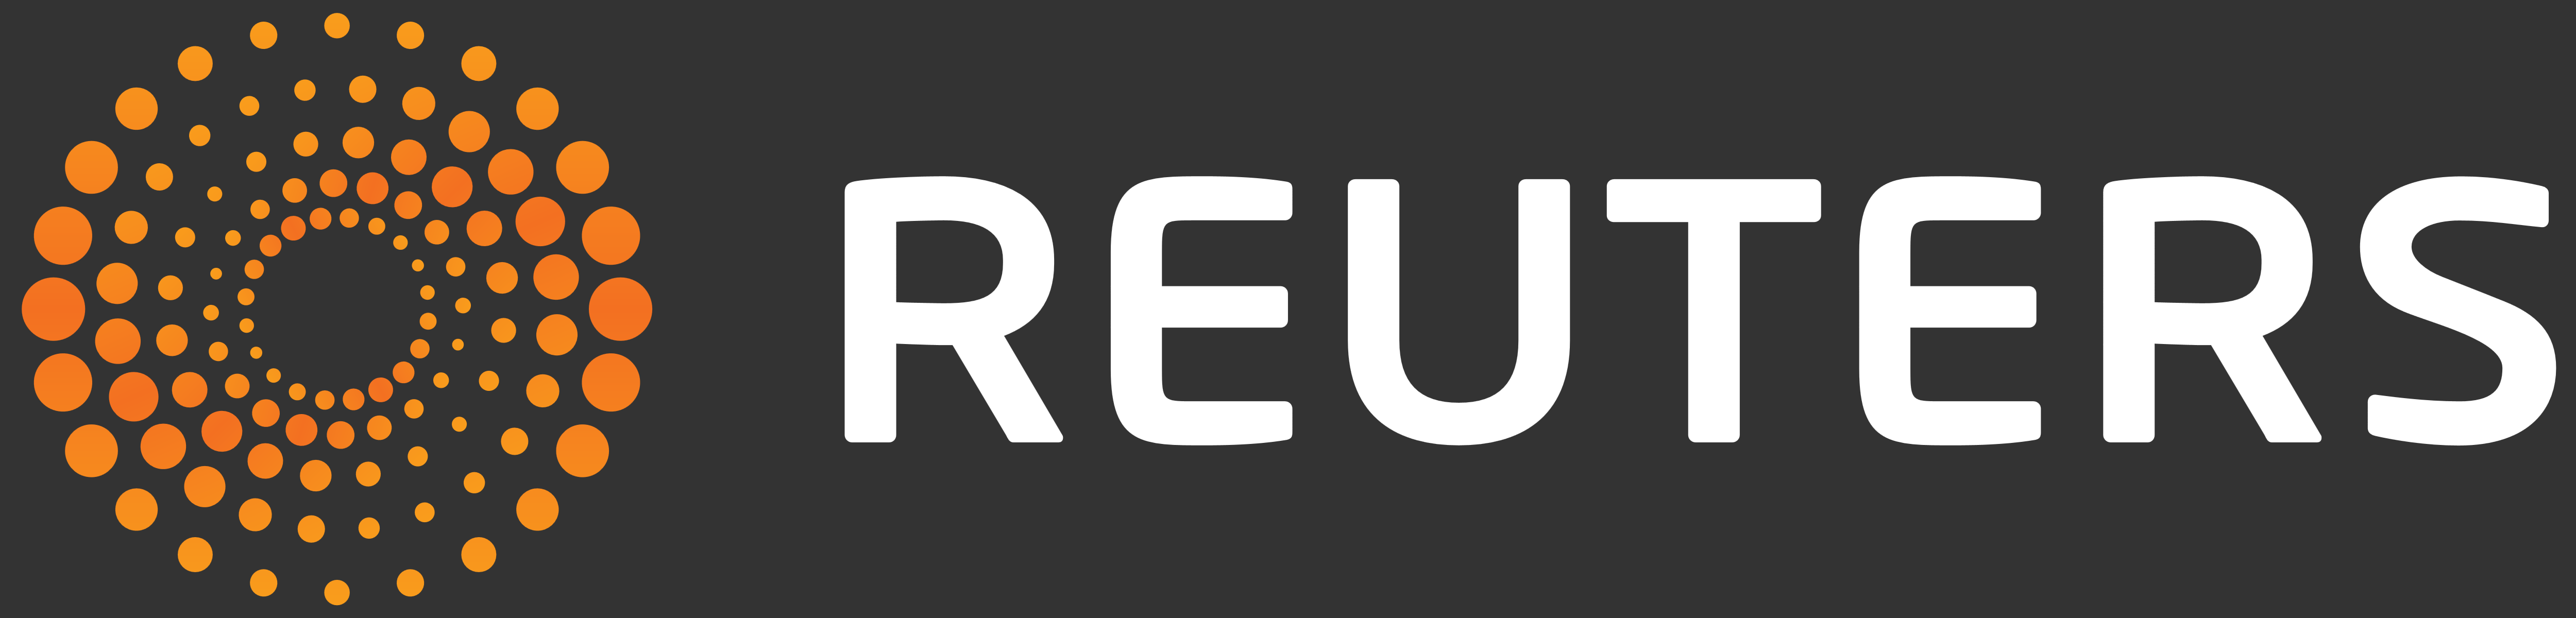 reuters � logos download